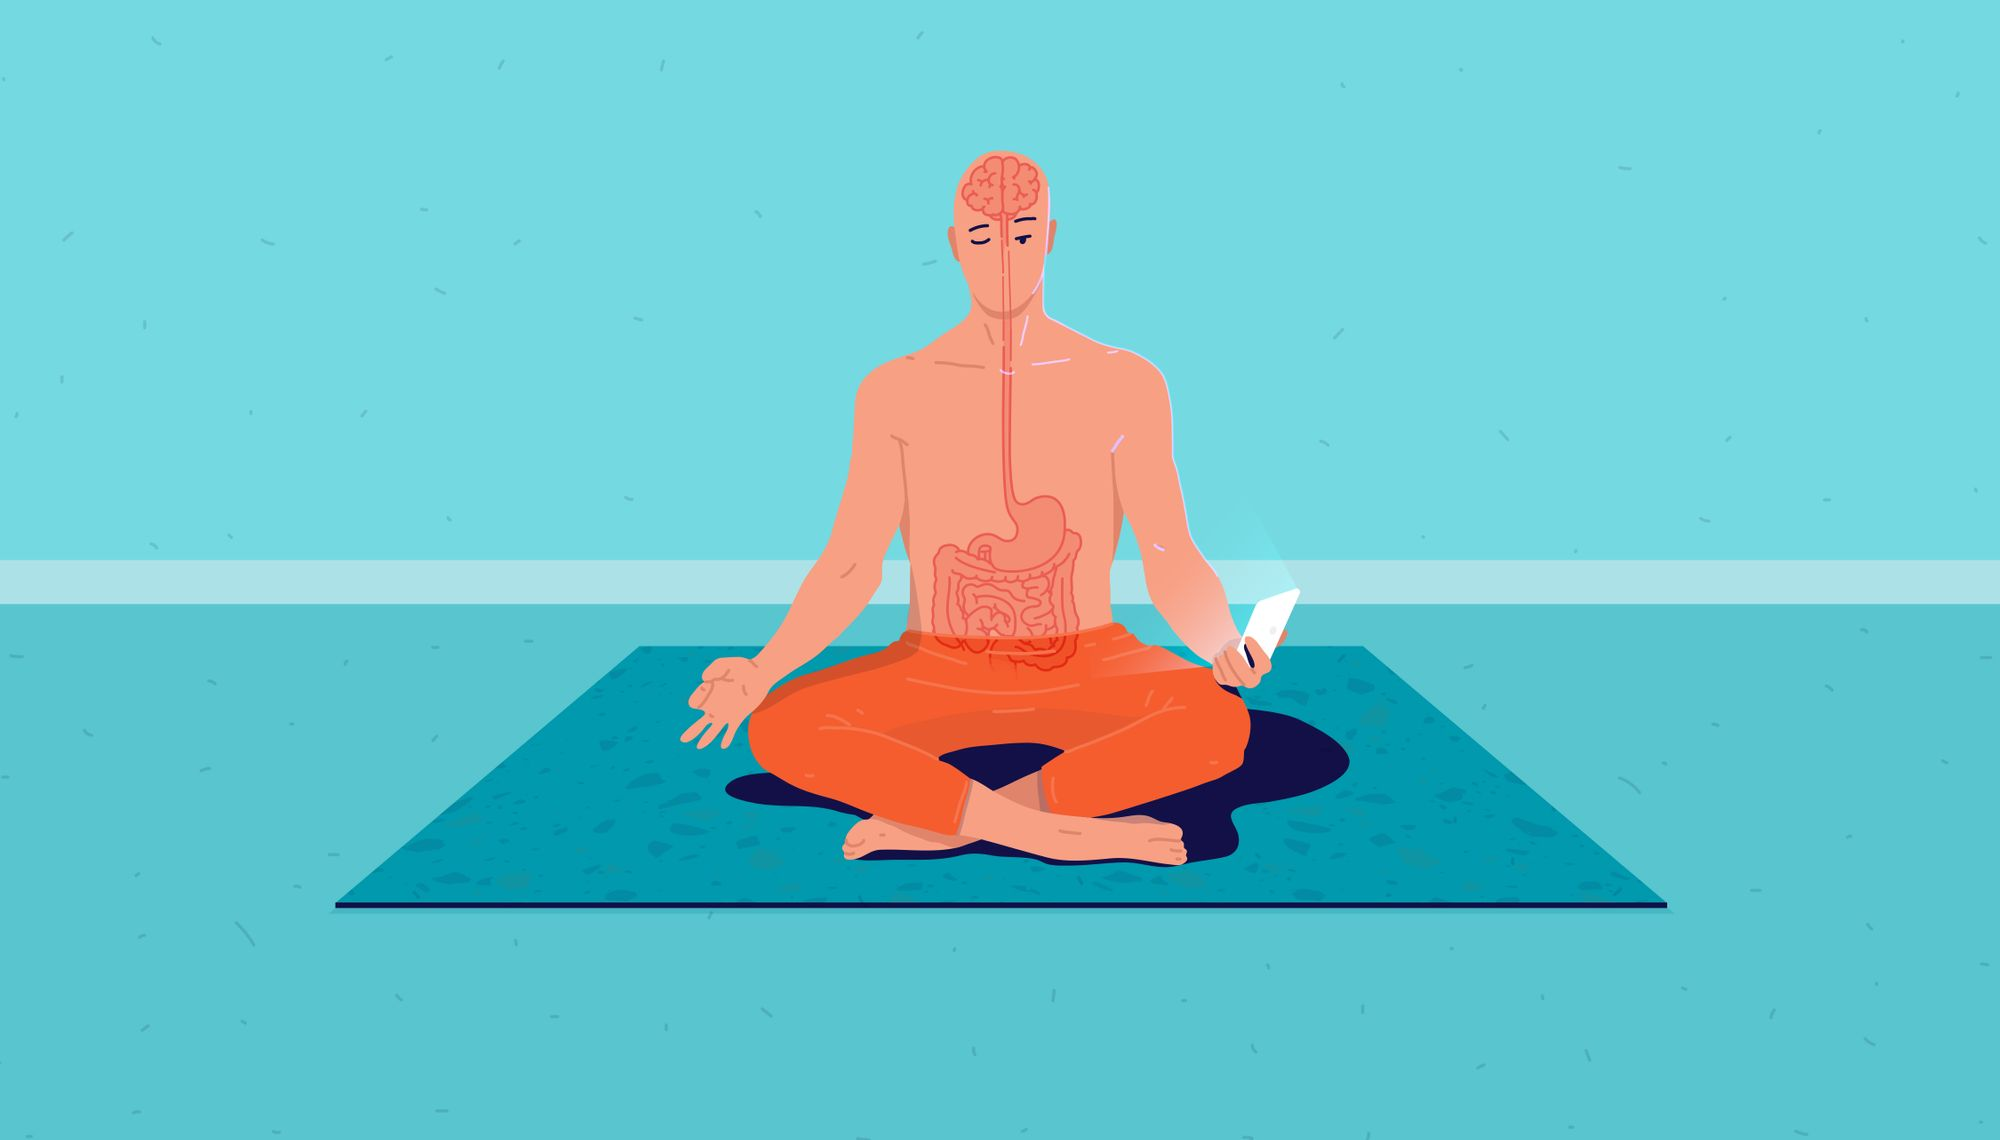 Man meditating holding phone with digestive system and brain shown as connected.